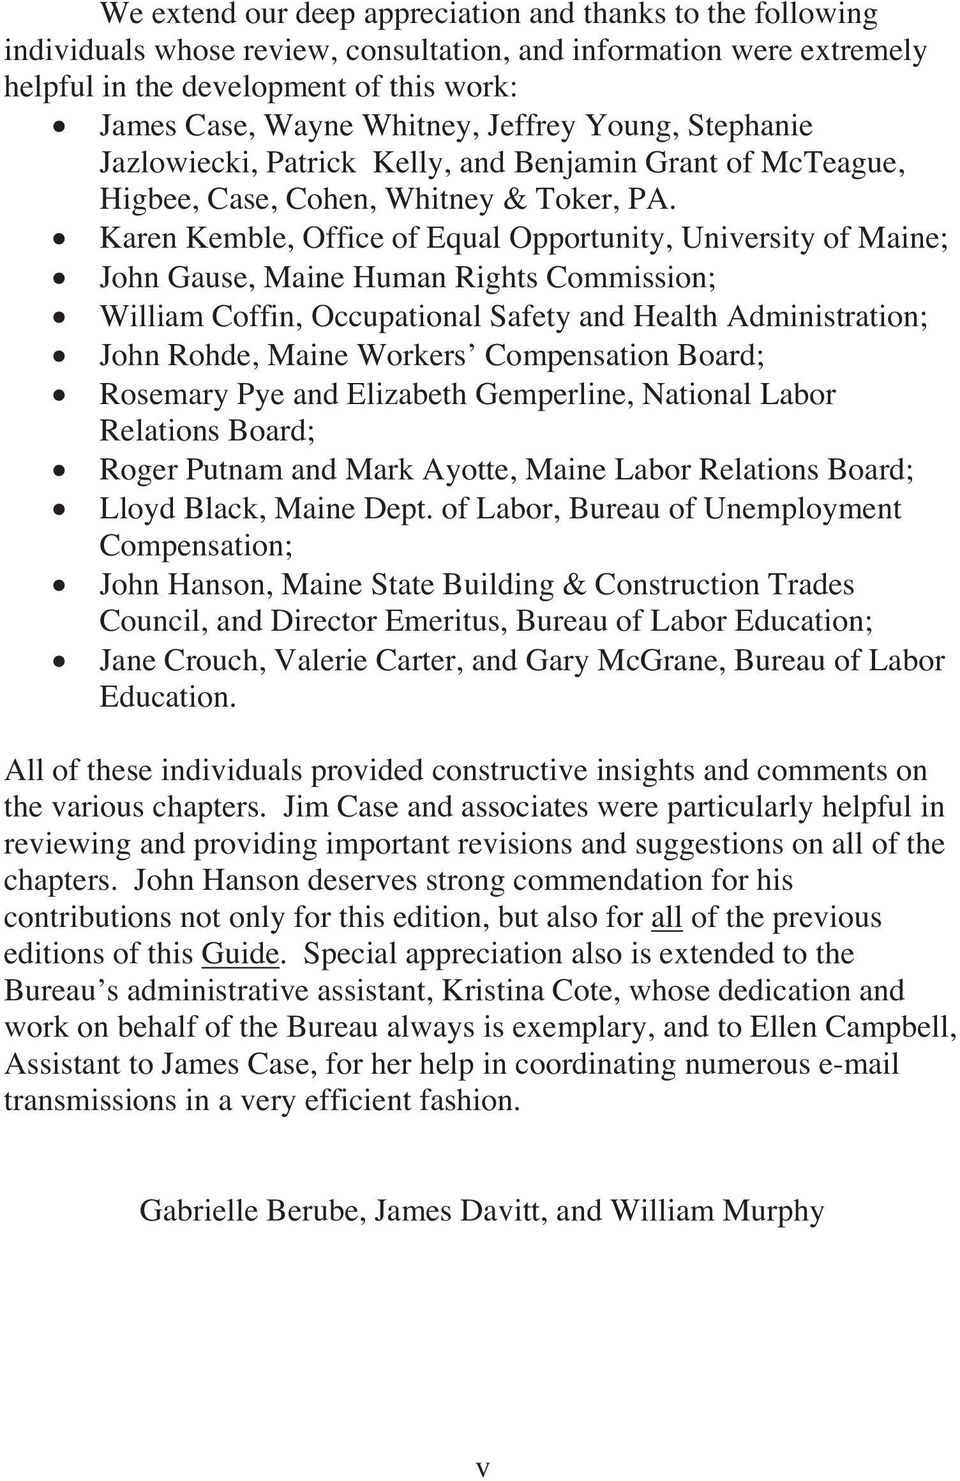 Karen Kemble, Office of Equal Opportunity, University of Maine; John Gause, Maine Human Rights Commission; William Coffin, Occupational Safety and Health Administration; John Rohde, Maine Workers